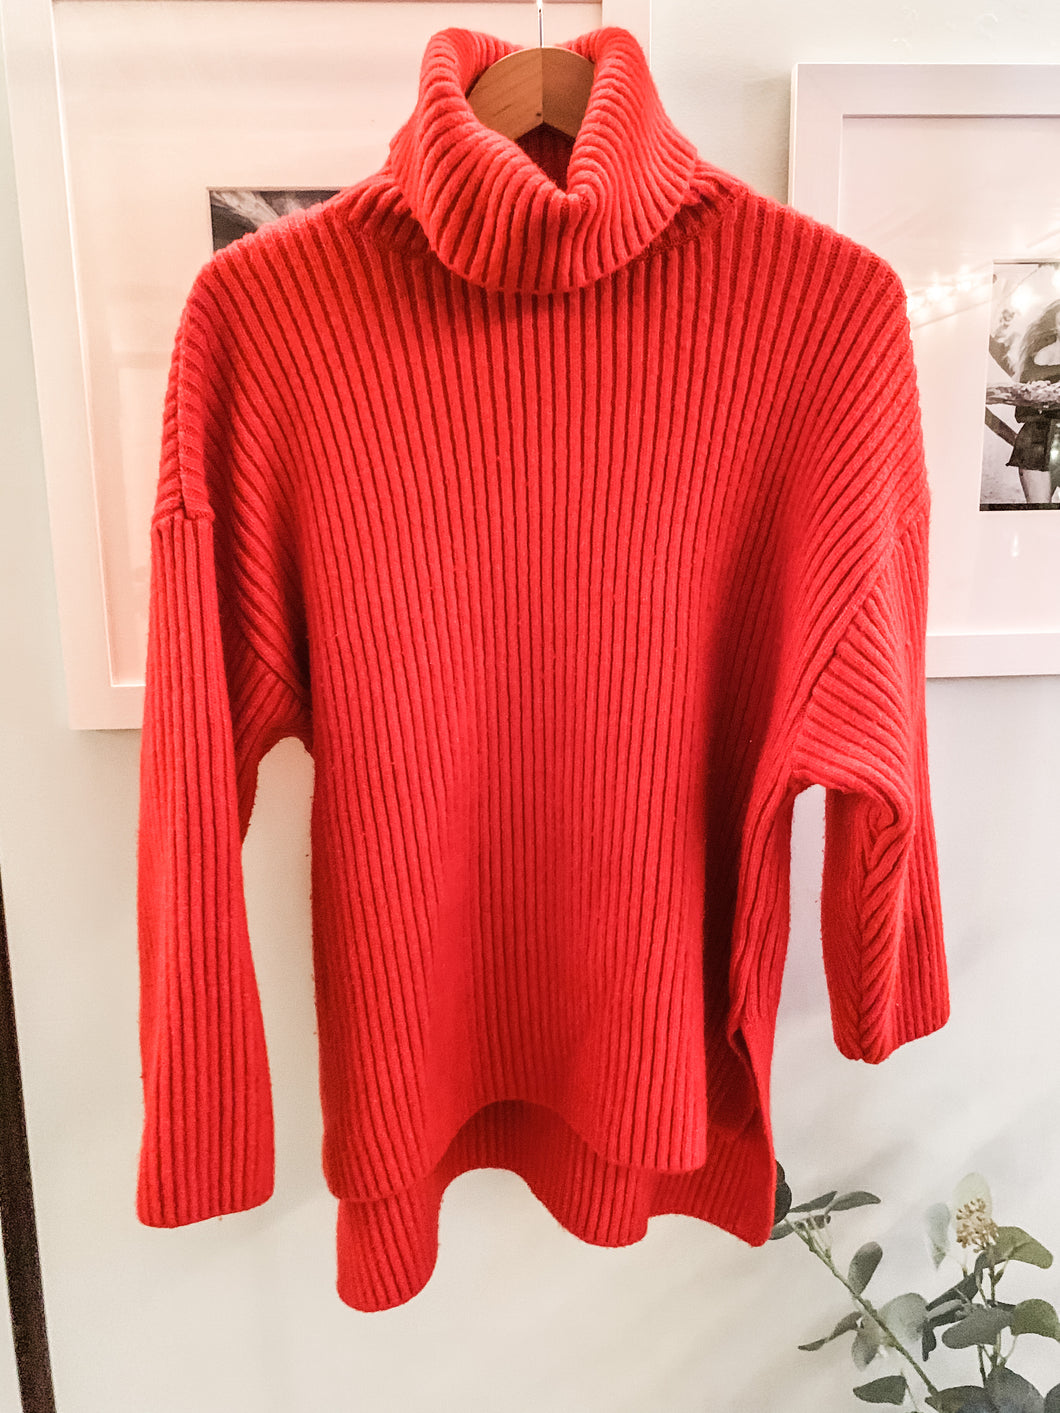 H & M cozy red turtleneck sweater (oversized with side slits)